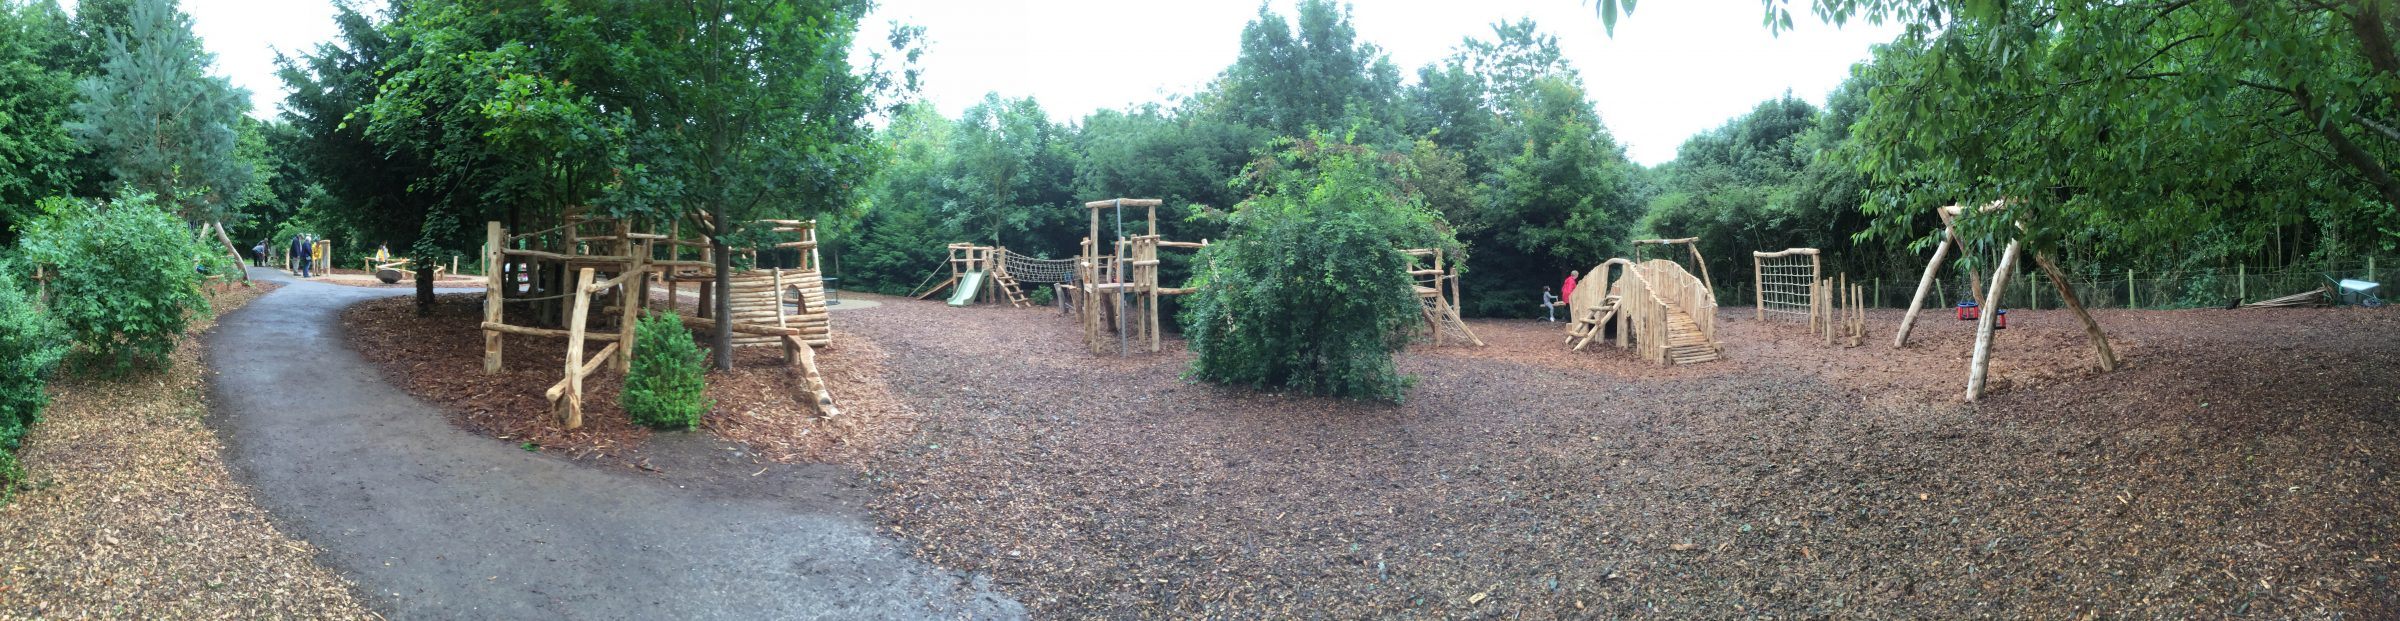 Panorama Fountains Abbey And Studley Foyal Extensive Rustic Outdoor Woodland Play Area By Flights Of Fantasy